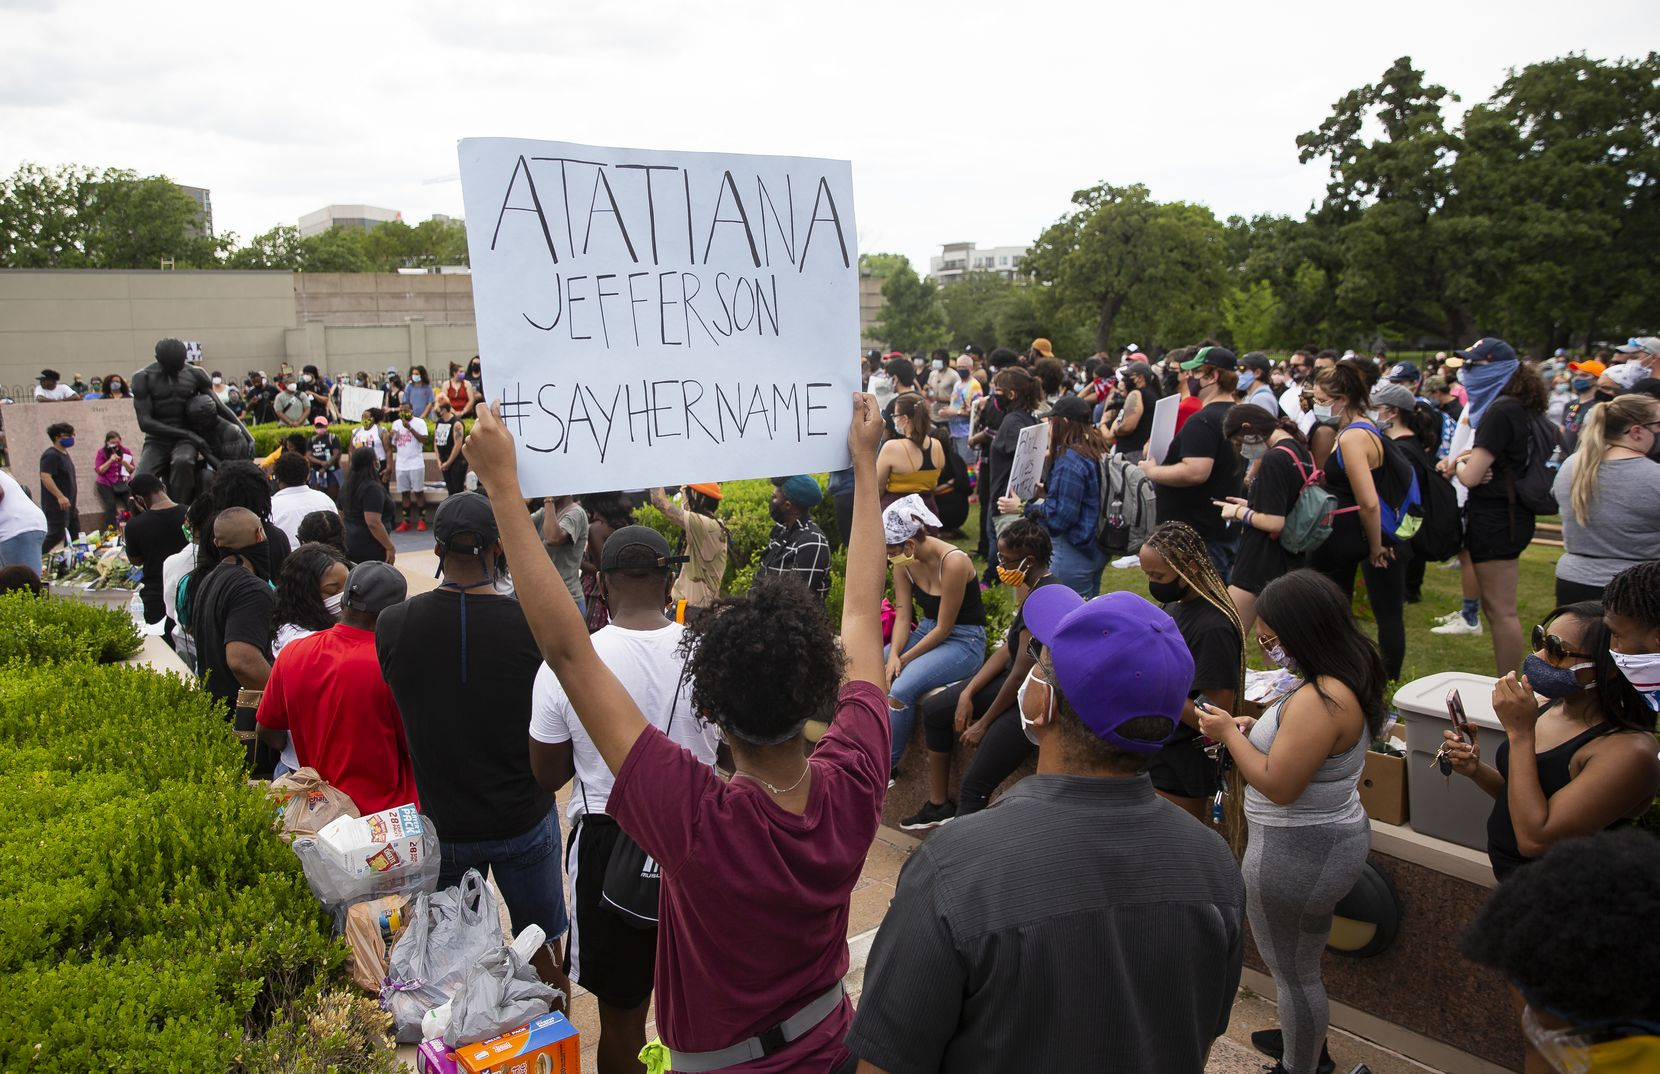 Among the signs held Sunday at the Freedman's Cemetery demonstration was one referencing Atatiana Jefferson, killed last October by a Fort Worth police officer as she and her nephew played a video game in their home.